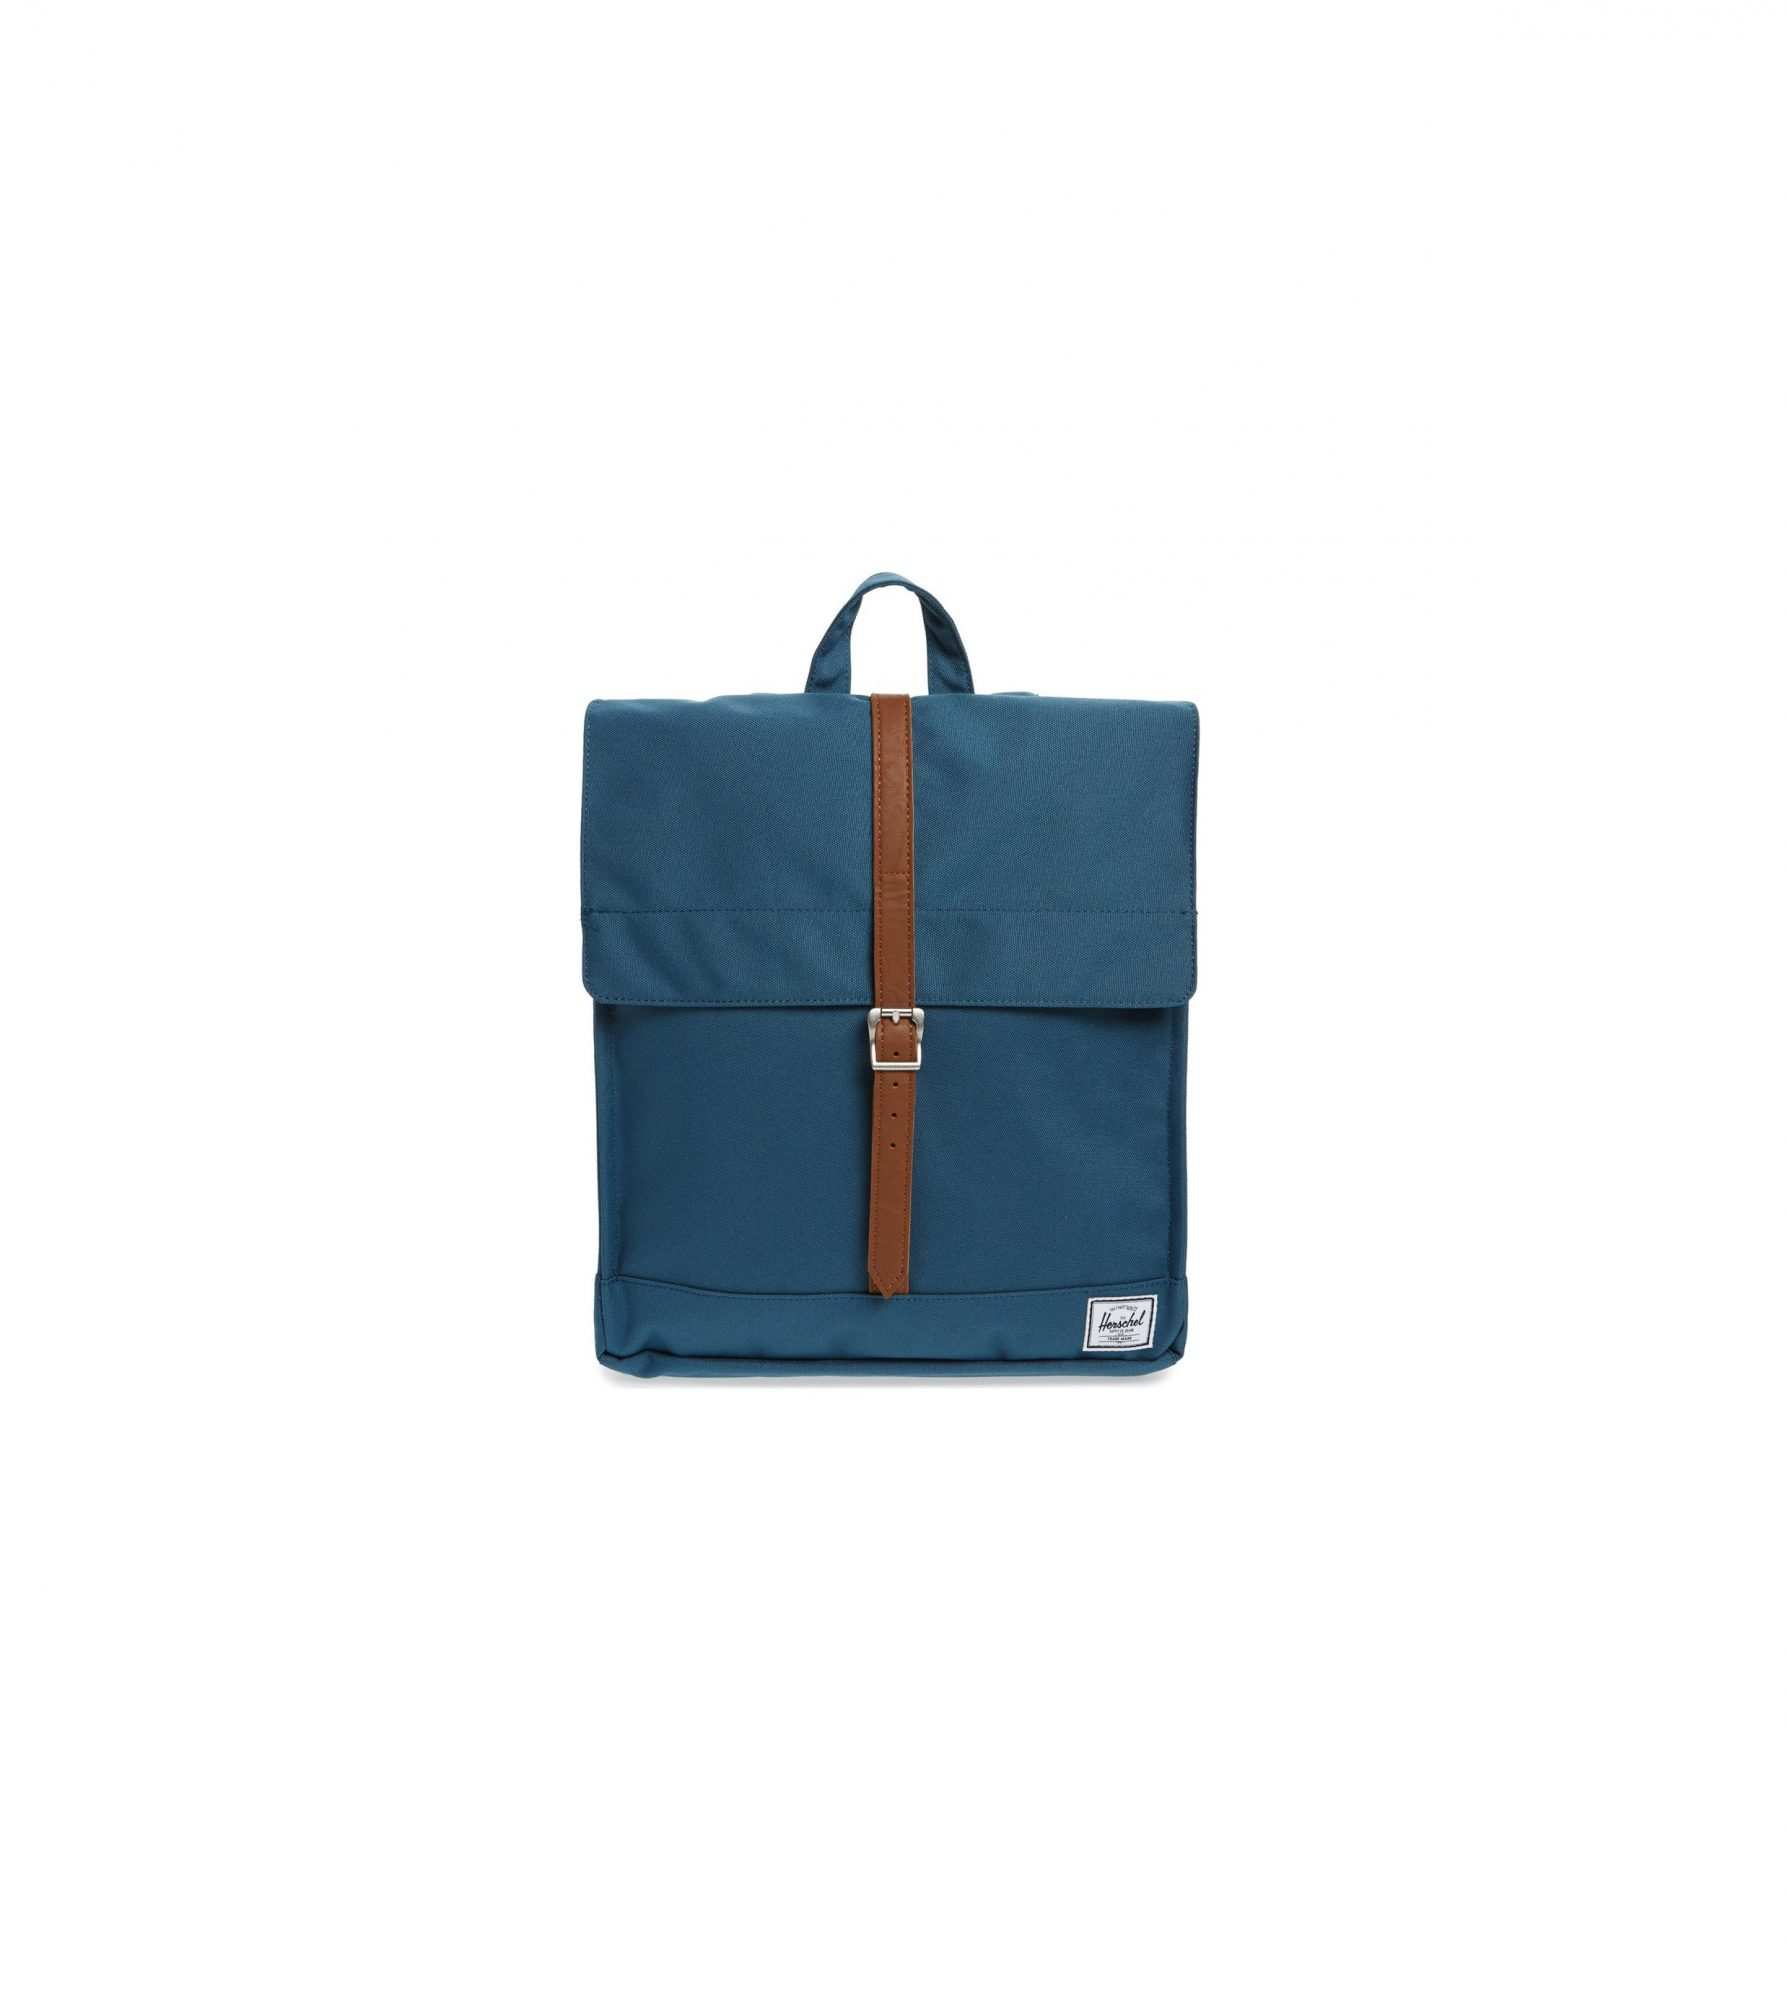 cad202891d39 10 Stylish School Bags for College Students